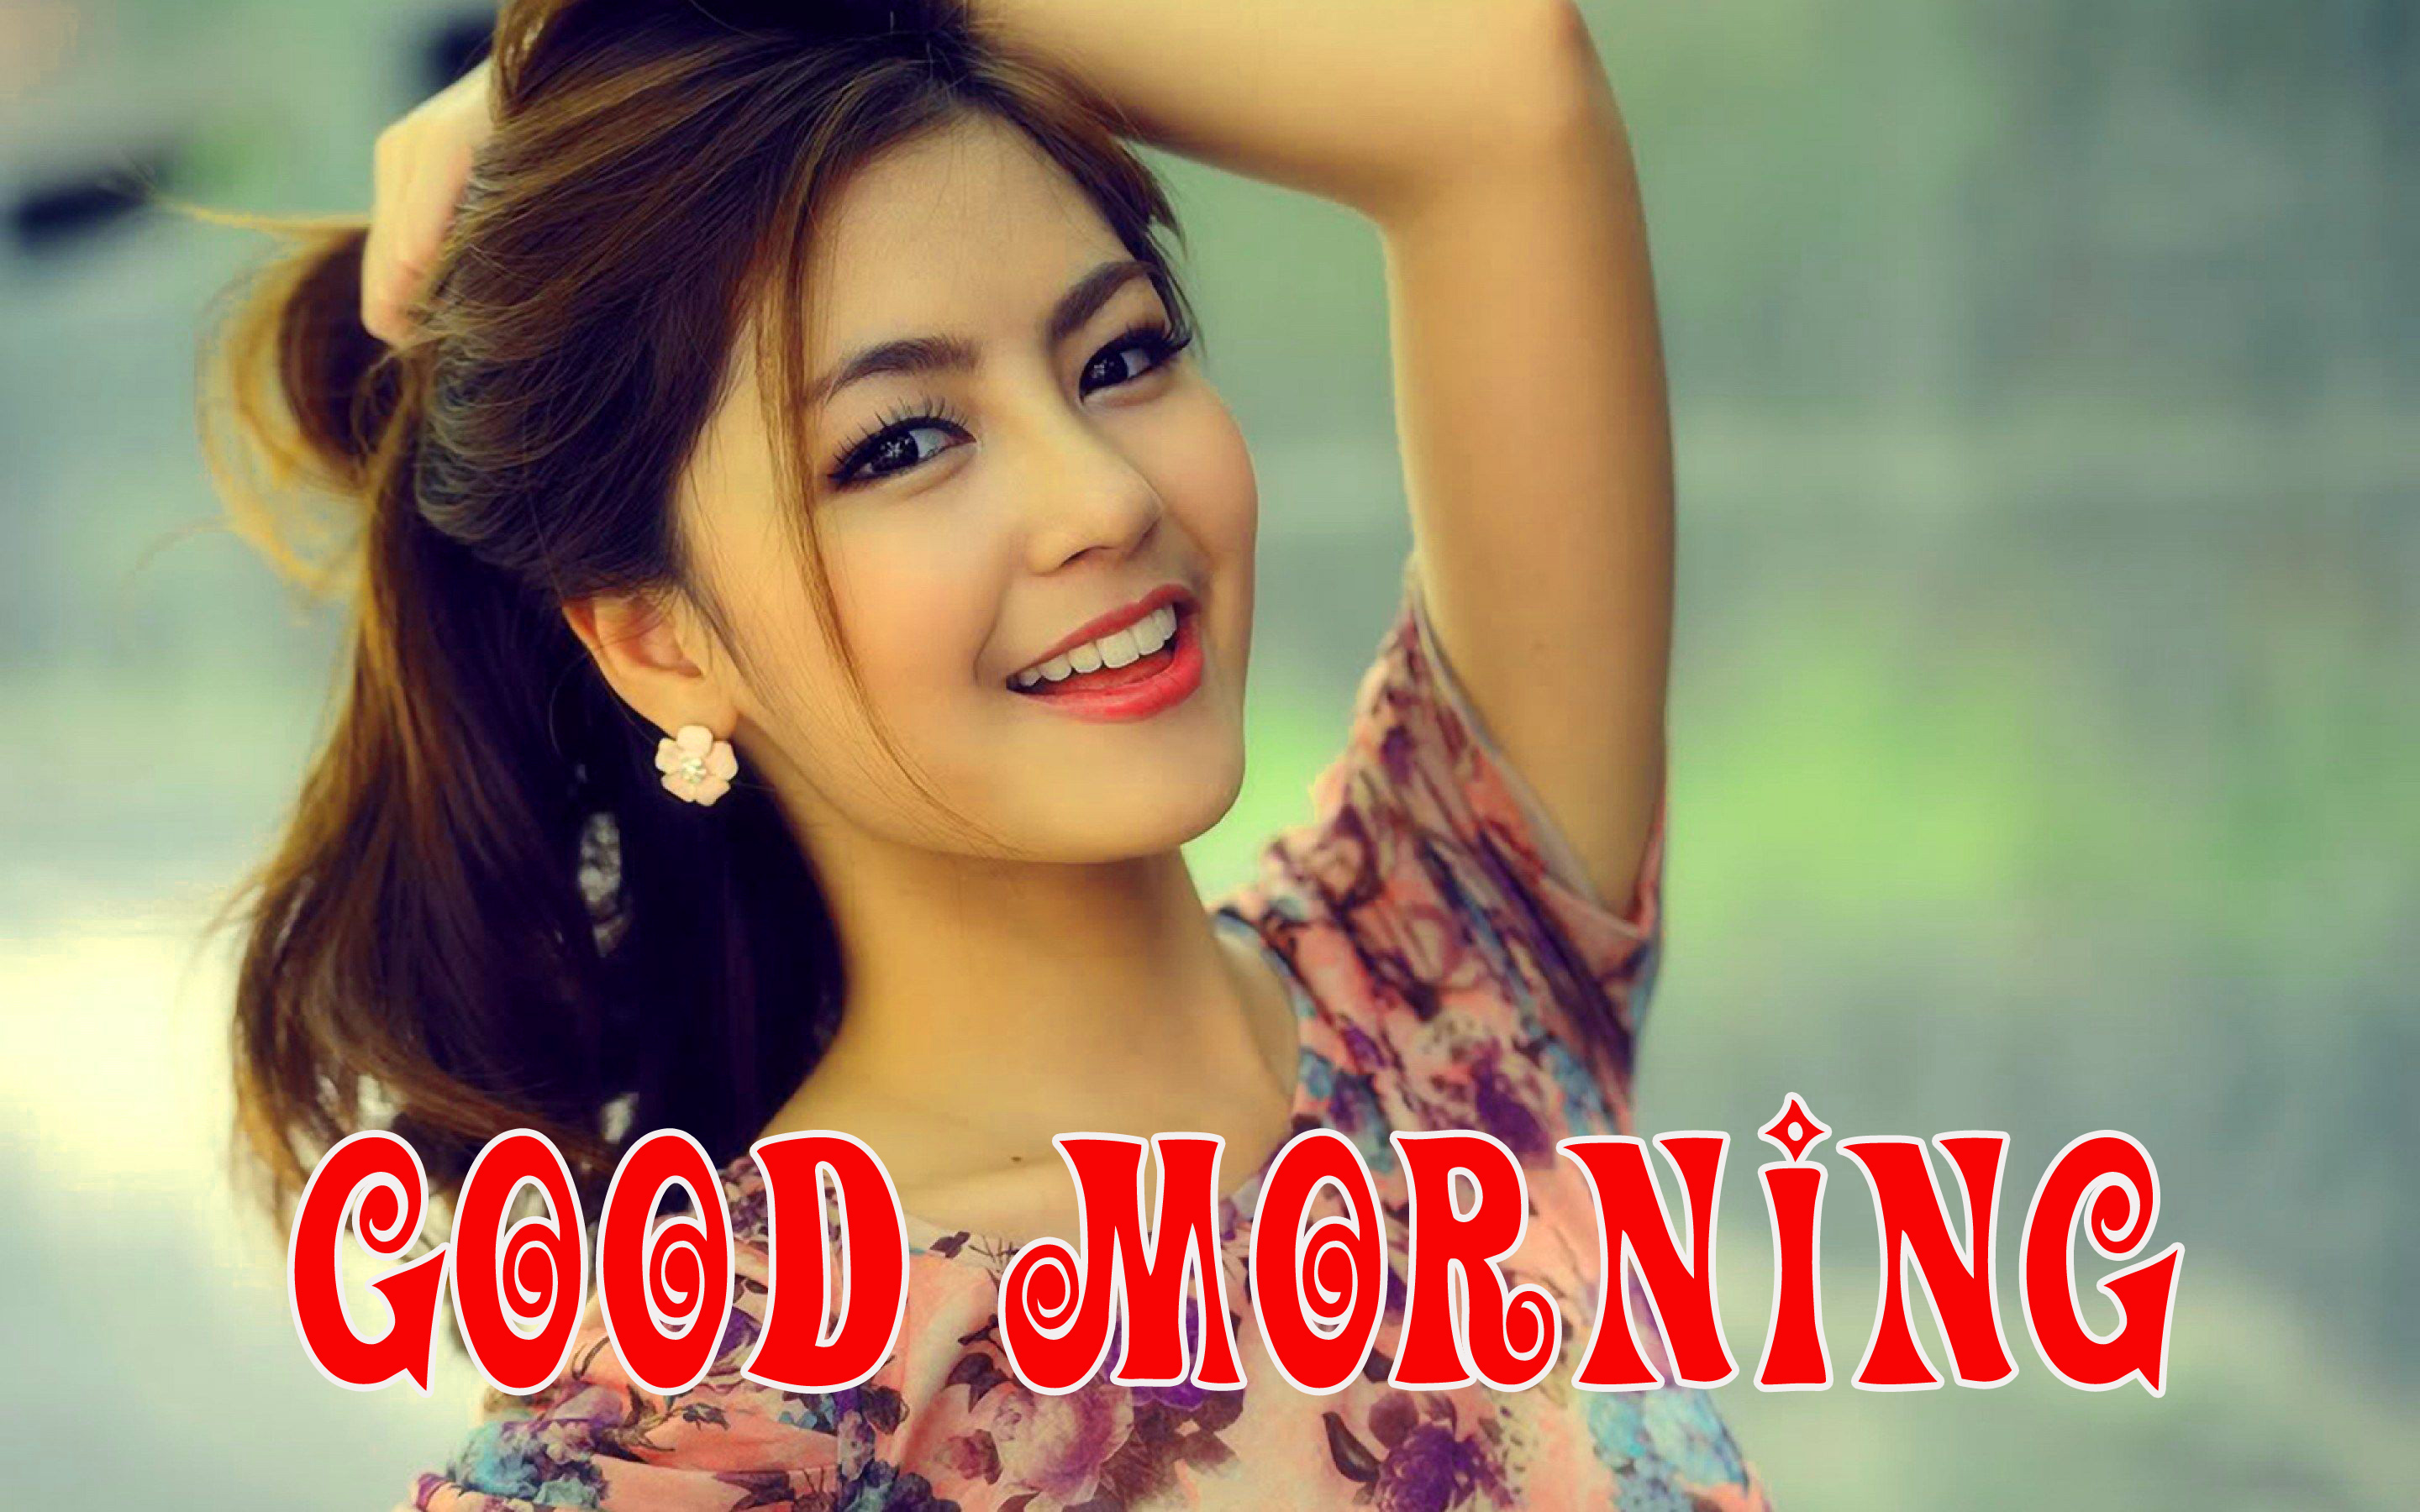 Good morning picture for the most beautiful girl in the world Images Wallpaper Pics Download for Whatsapp